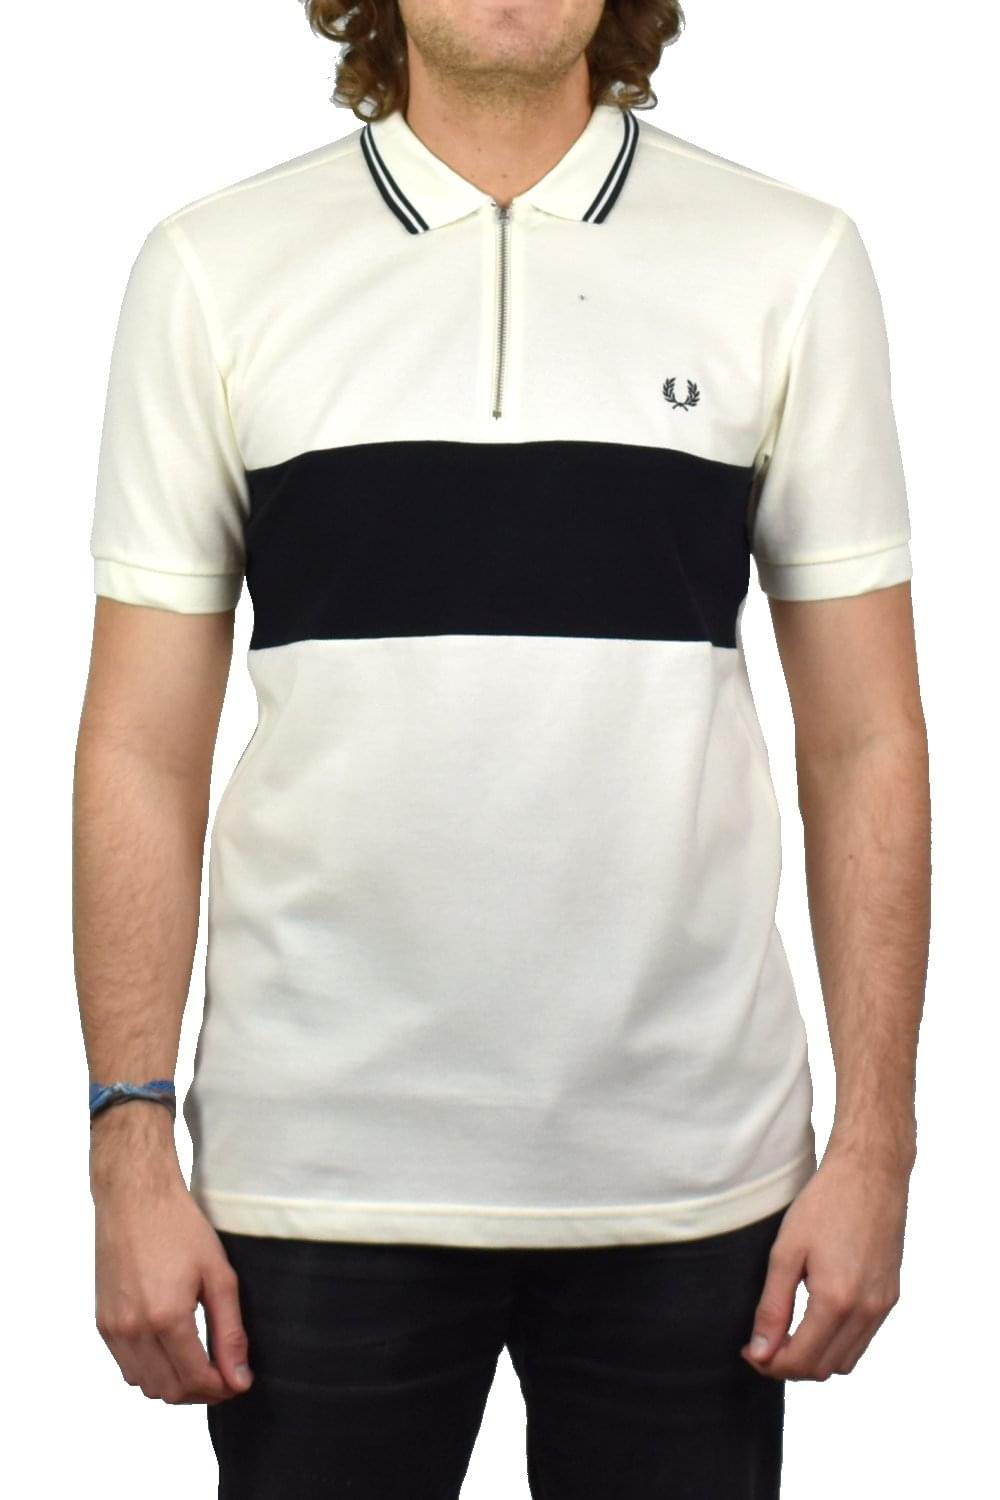 7ef6643b0 Fred Perry Panelled Zip Neck Pique Polo Shirt (Light Ecru)